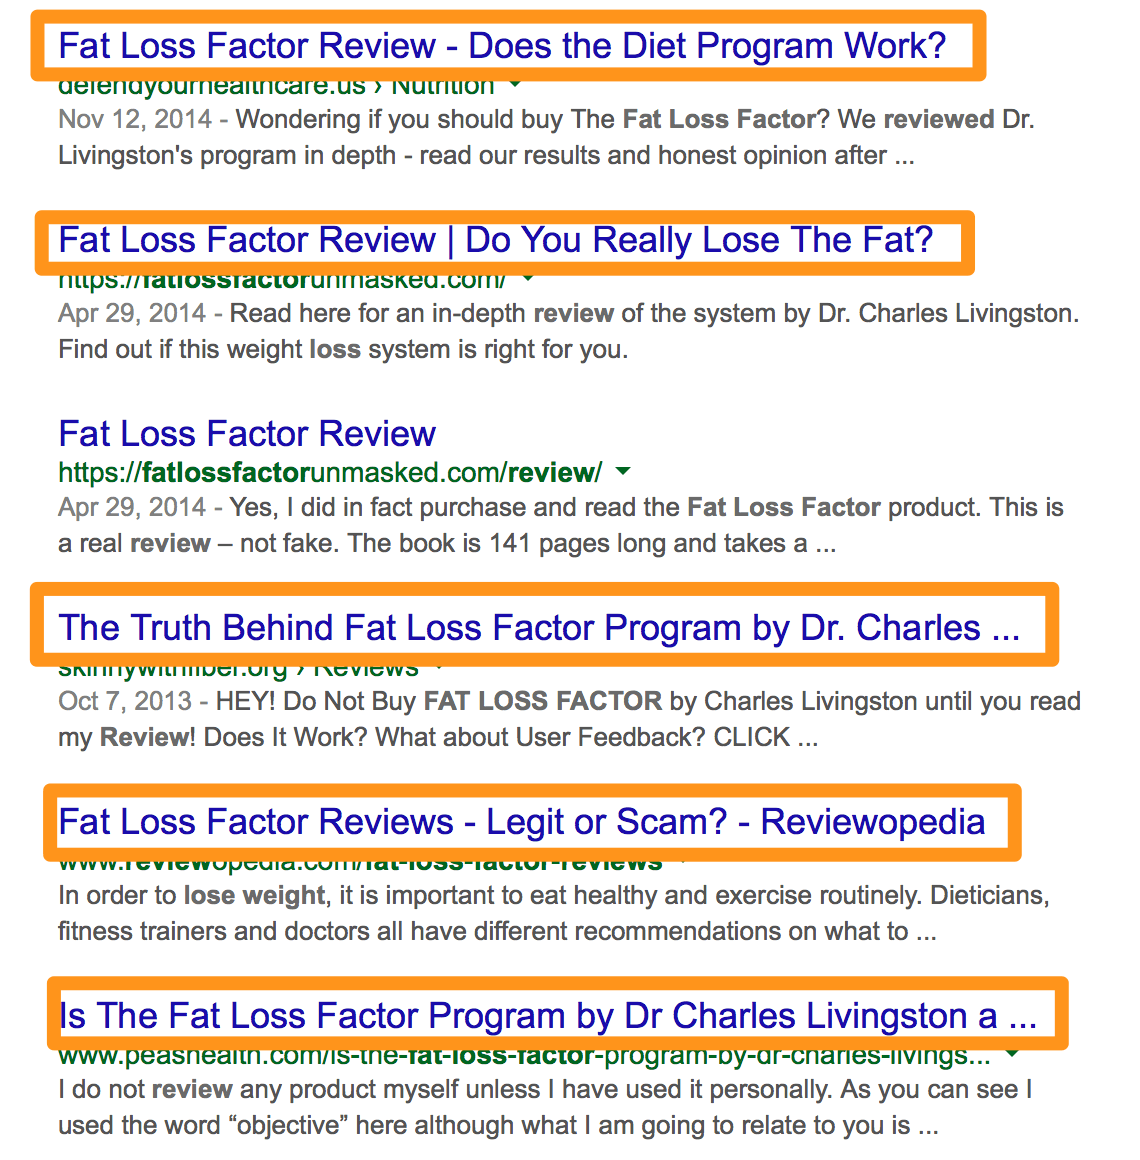 https://cdn.authorityhacker.com/wp-content/uploads/2015/07/fat_loss_factor_review_-_Google_Search.png